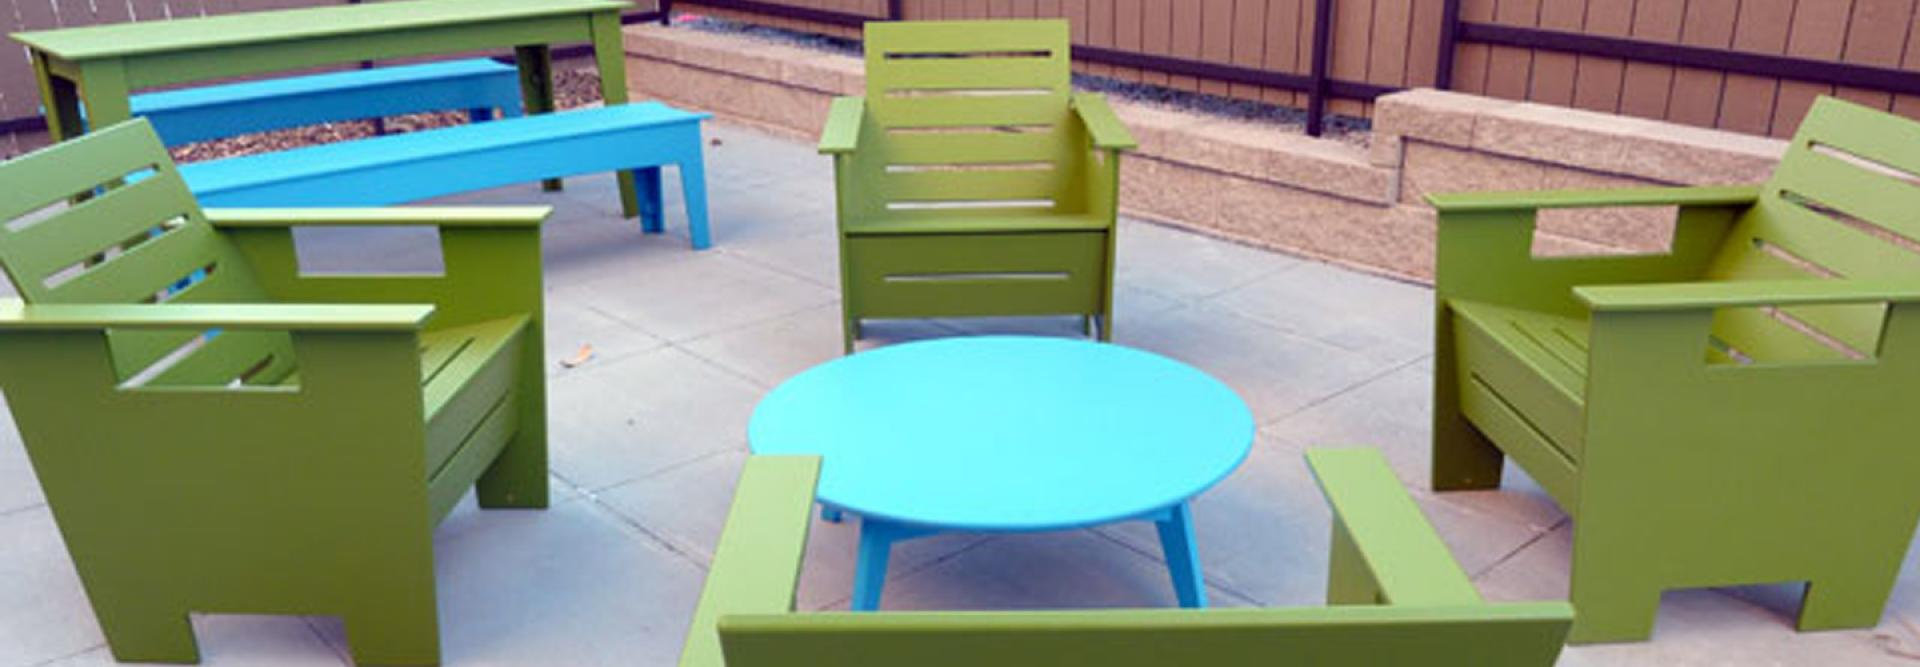 Patio and Seating at the Cruise Denver Apartment Building